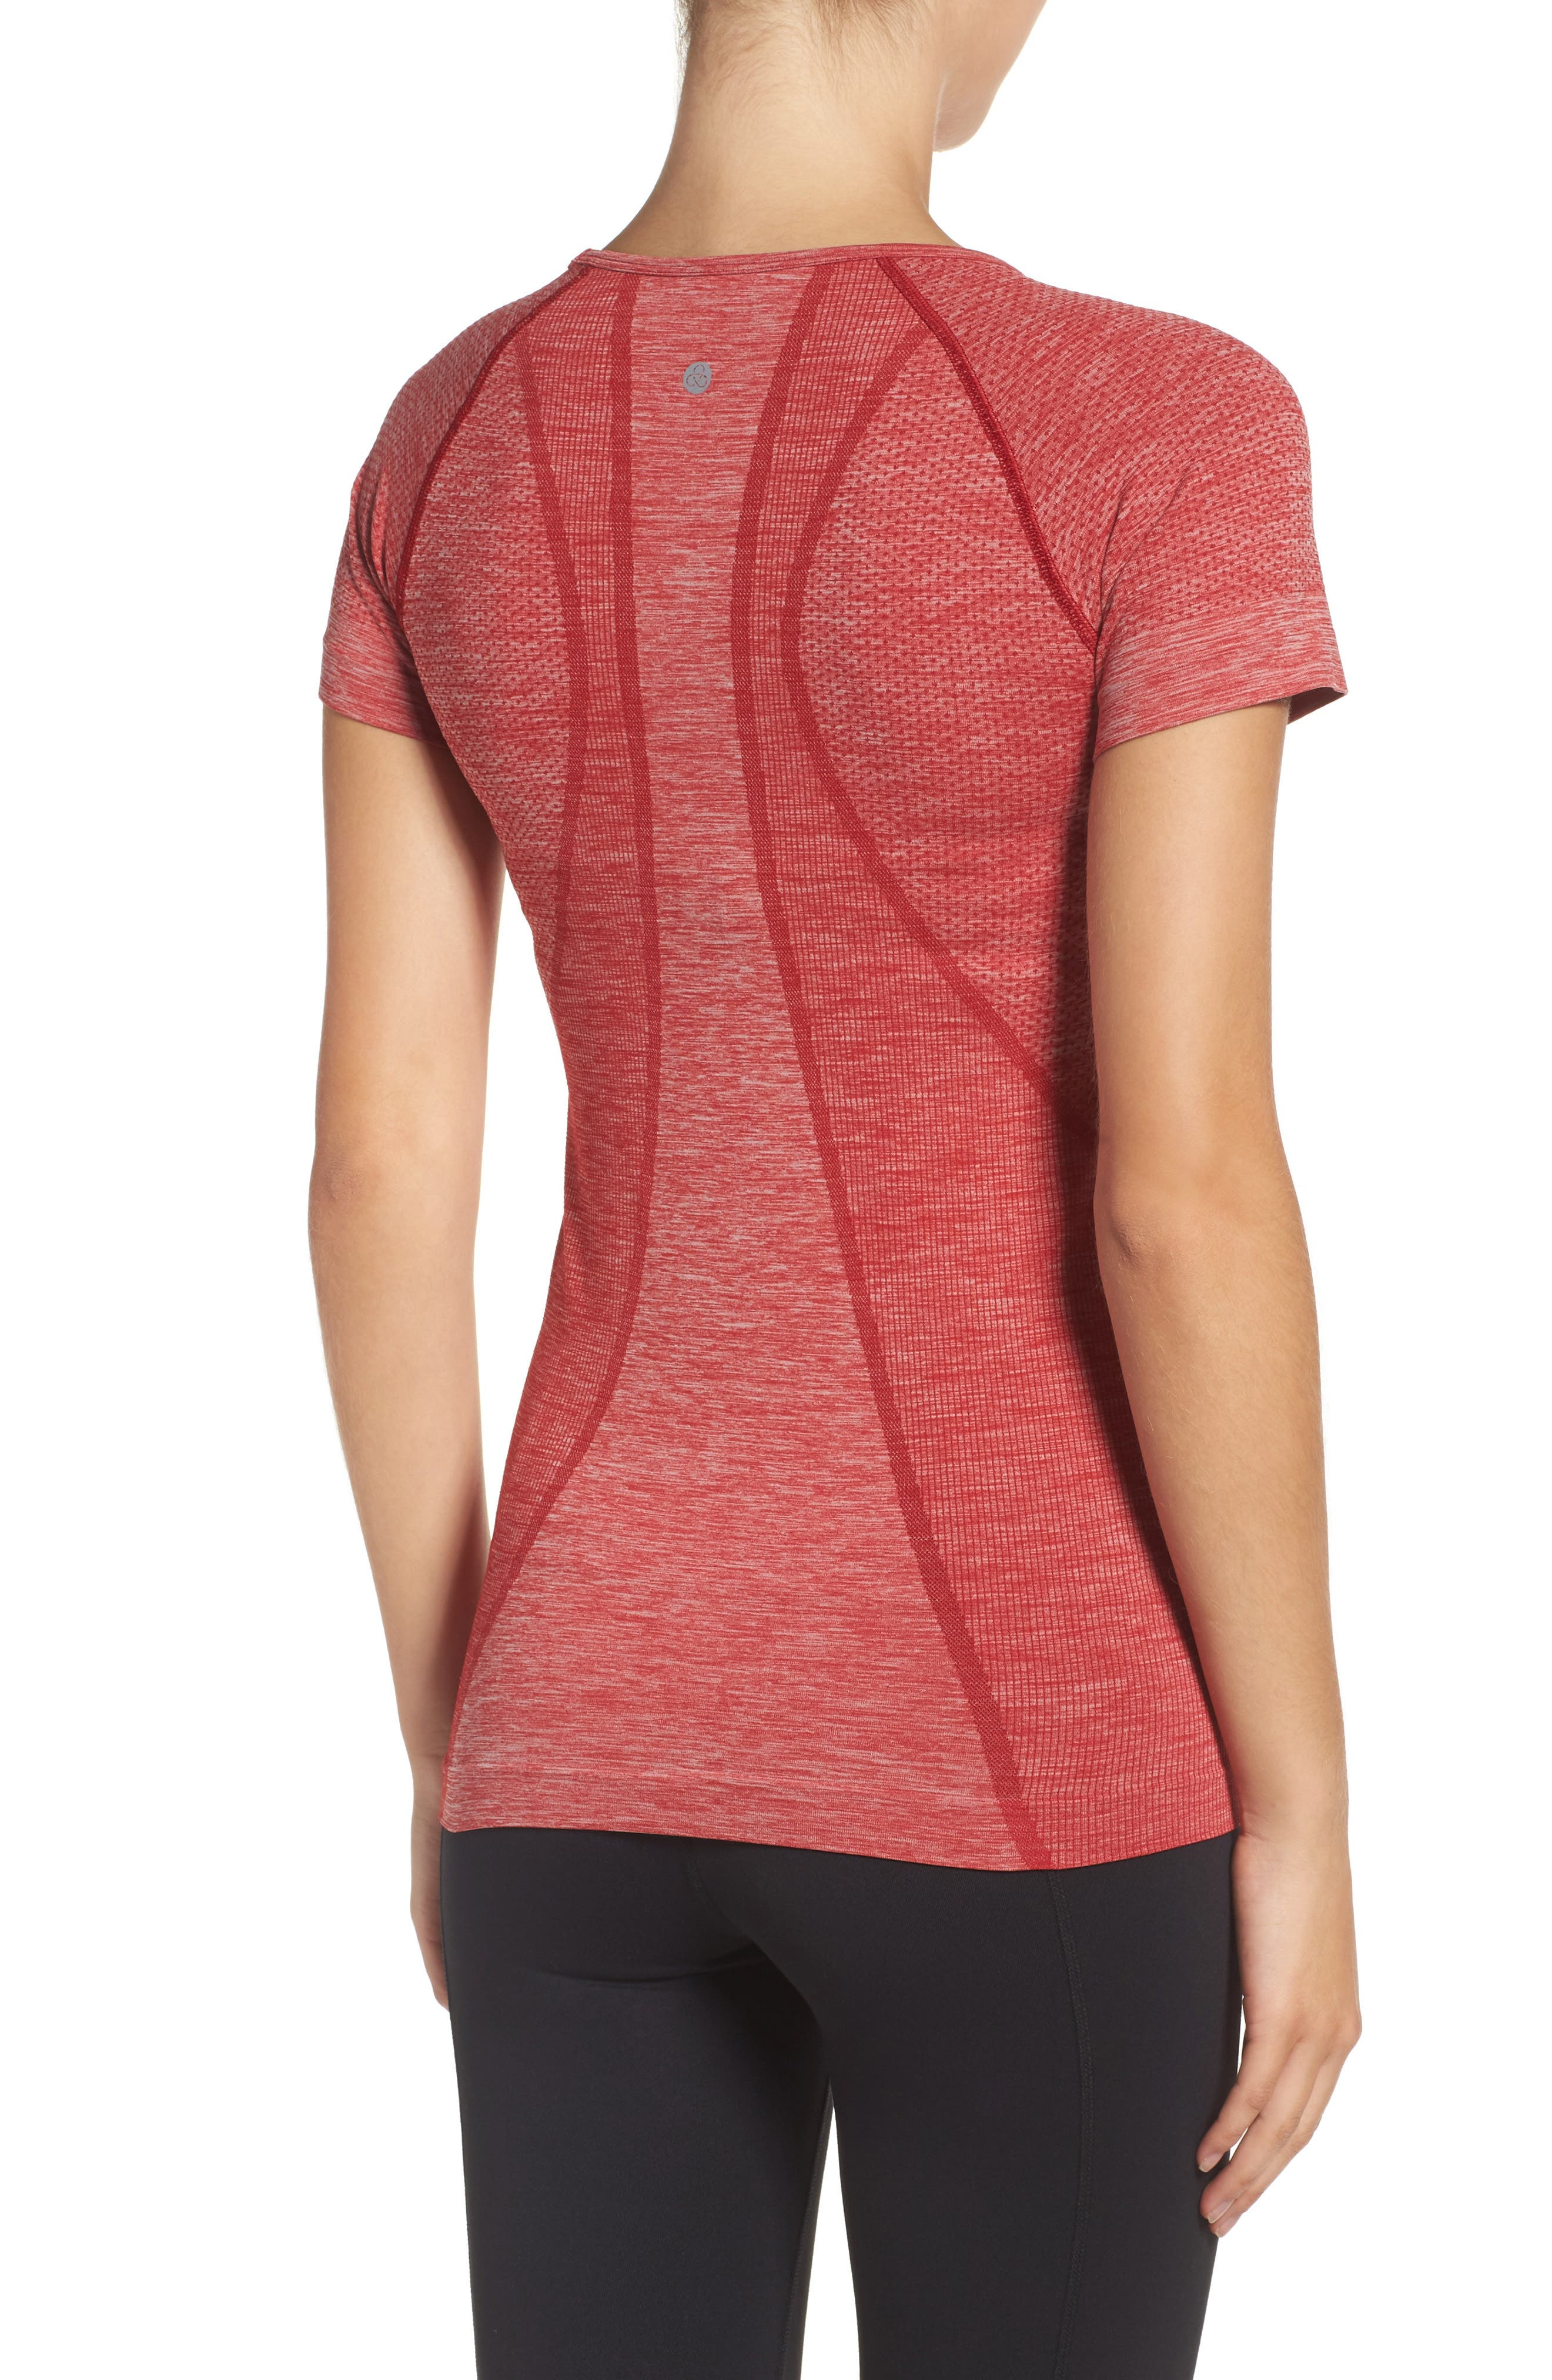 ,                             Stand Out Seamless Training Tee,                             Alternate thumbnail 78, color,                             601